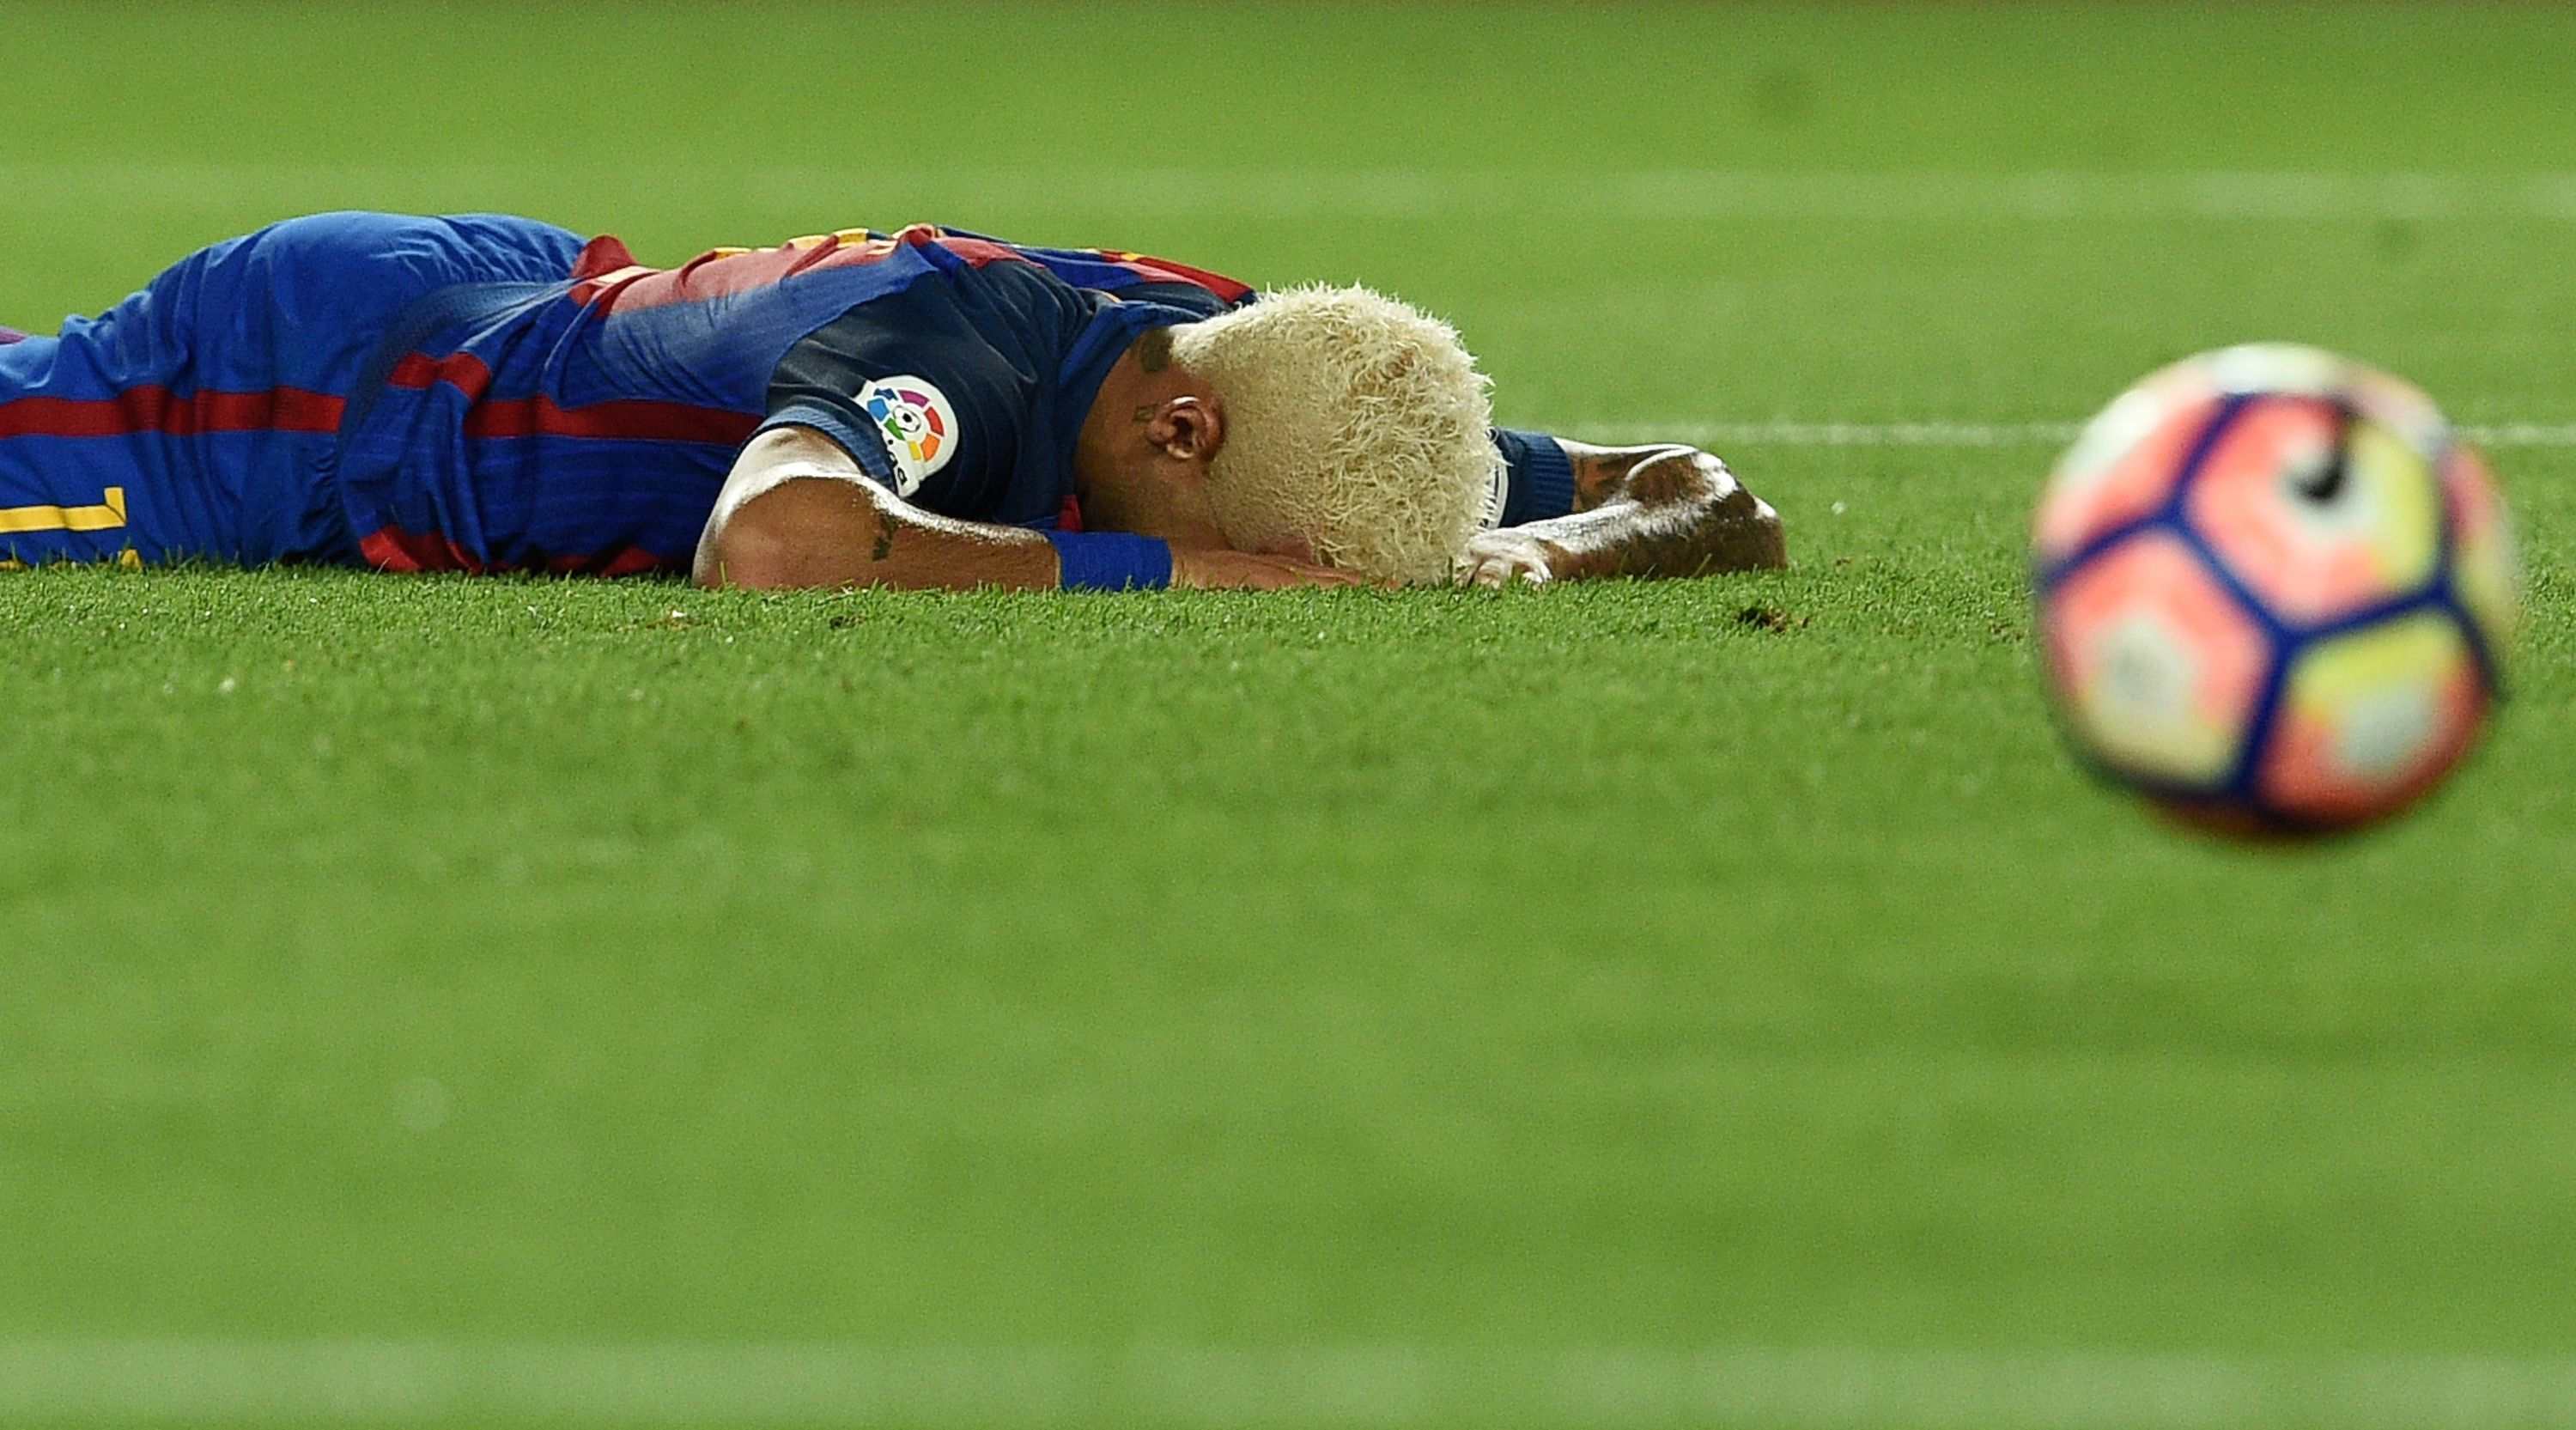 Barcelona's Brazilian forward Neymar lies on the pitch after missing a goal during the Spanish league football match FC Barcelona vs Deportivo Alaves at the Camp Nou stadium in Barcelona on September 10, 2016. / AFP / LLUIS GENE (Photo credit should read LLUIS GENE/AFP/Getty Images)